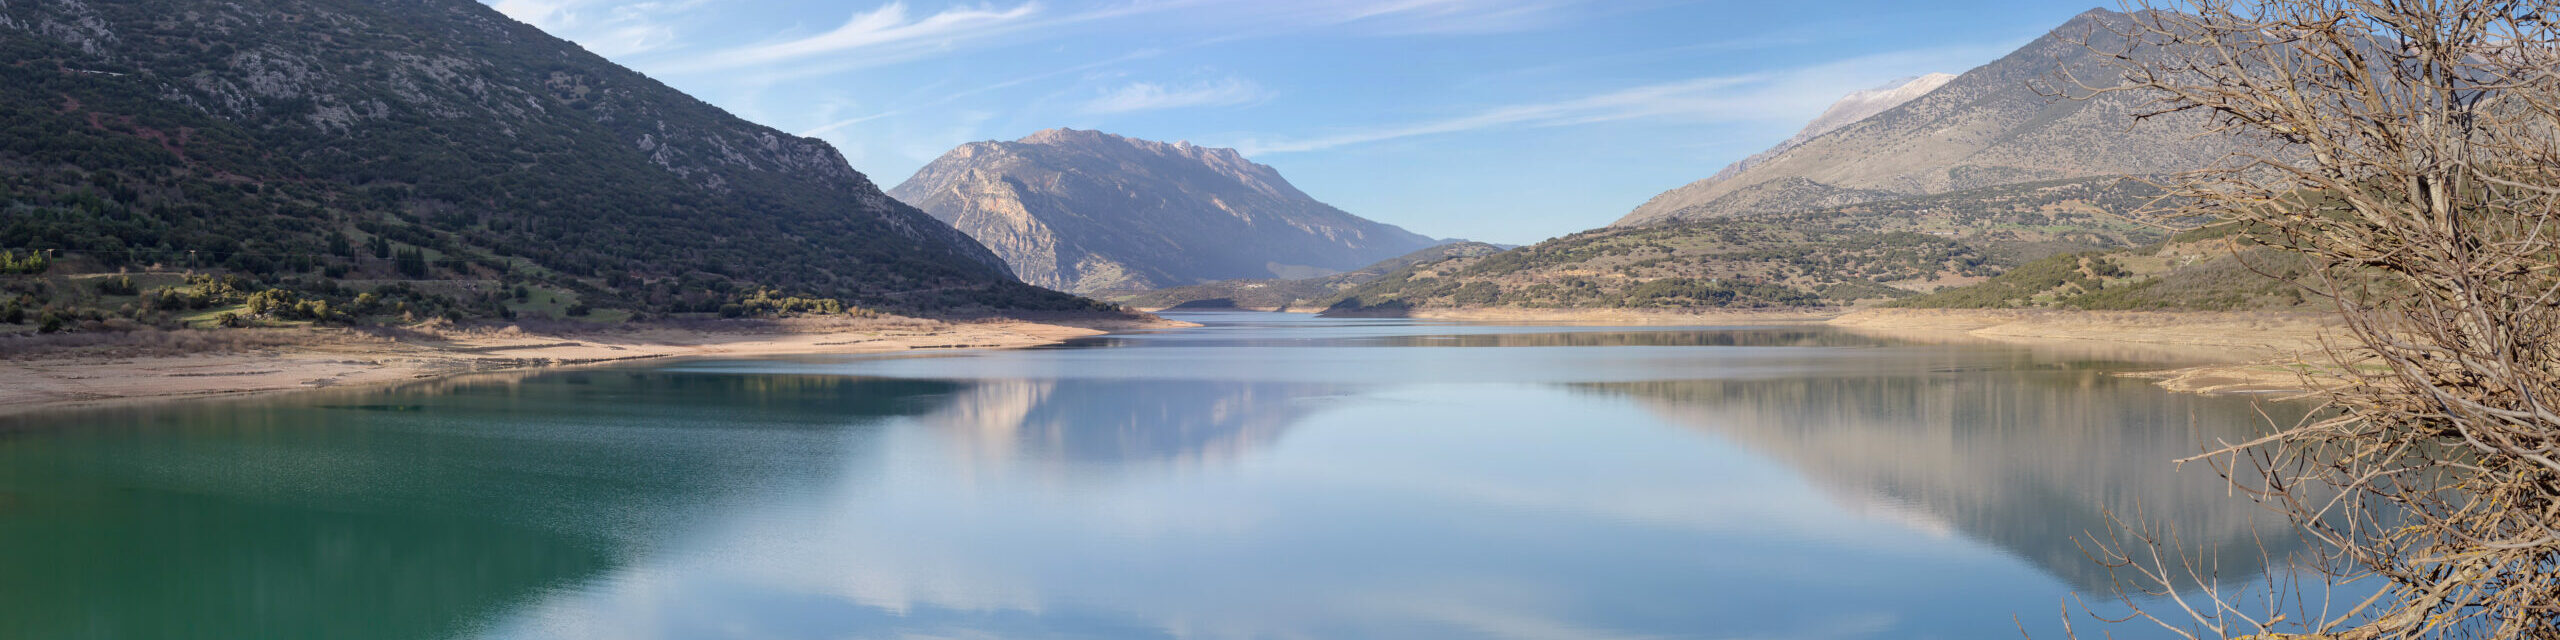 Mornos: The butterfly lake of Greece and its unique beauty